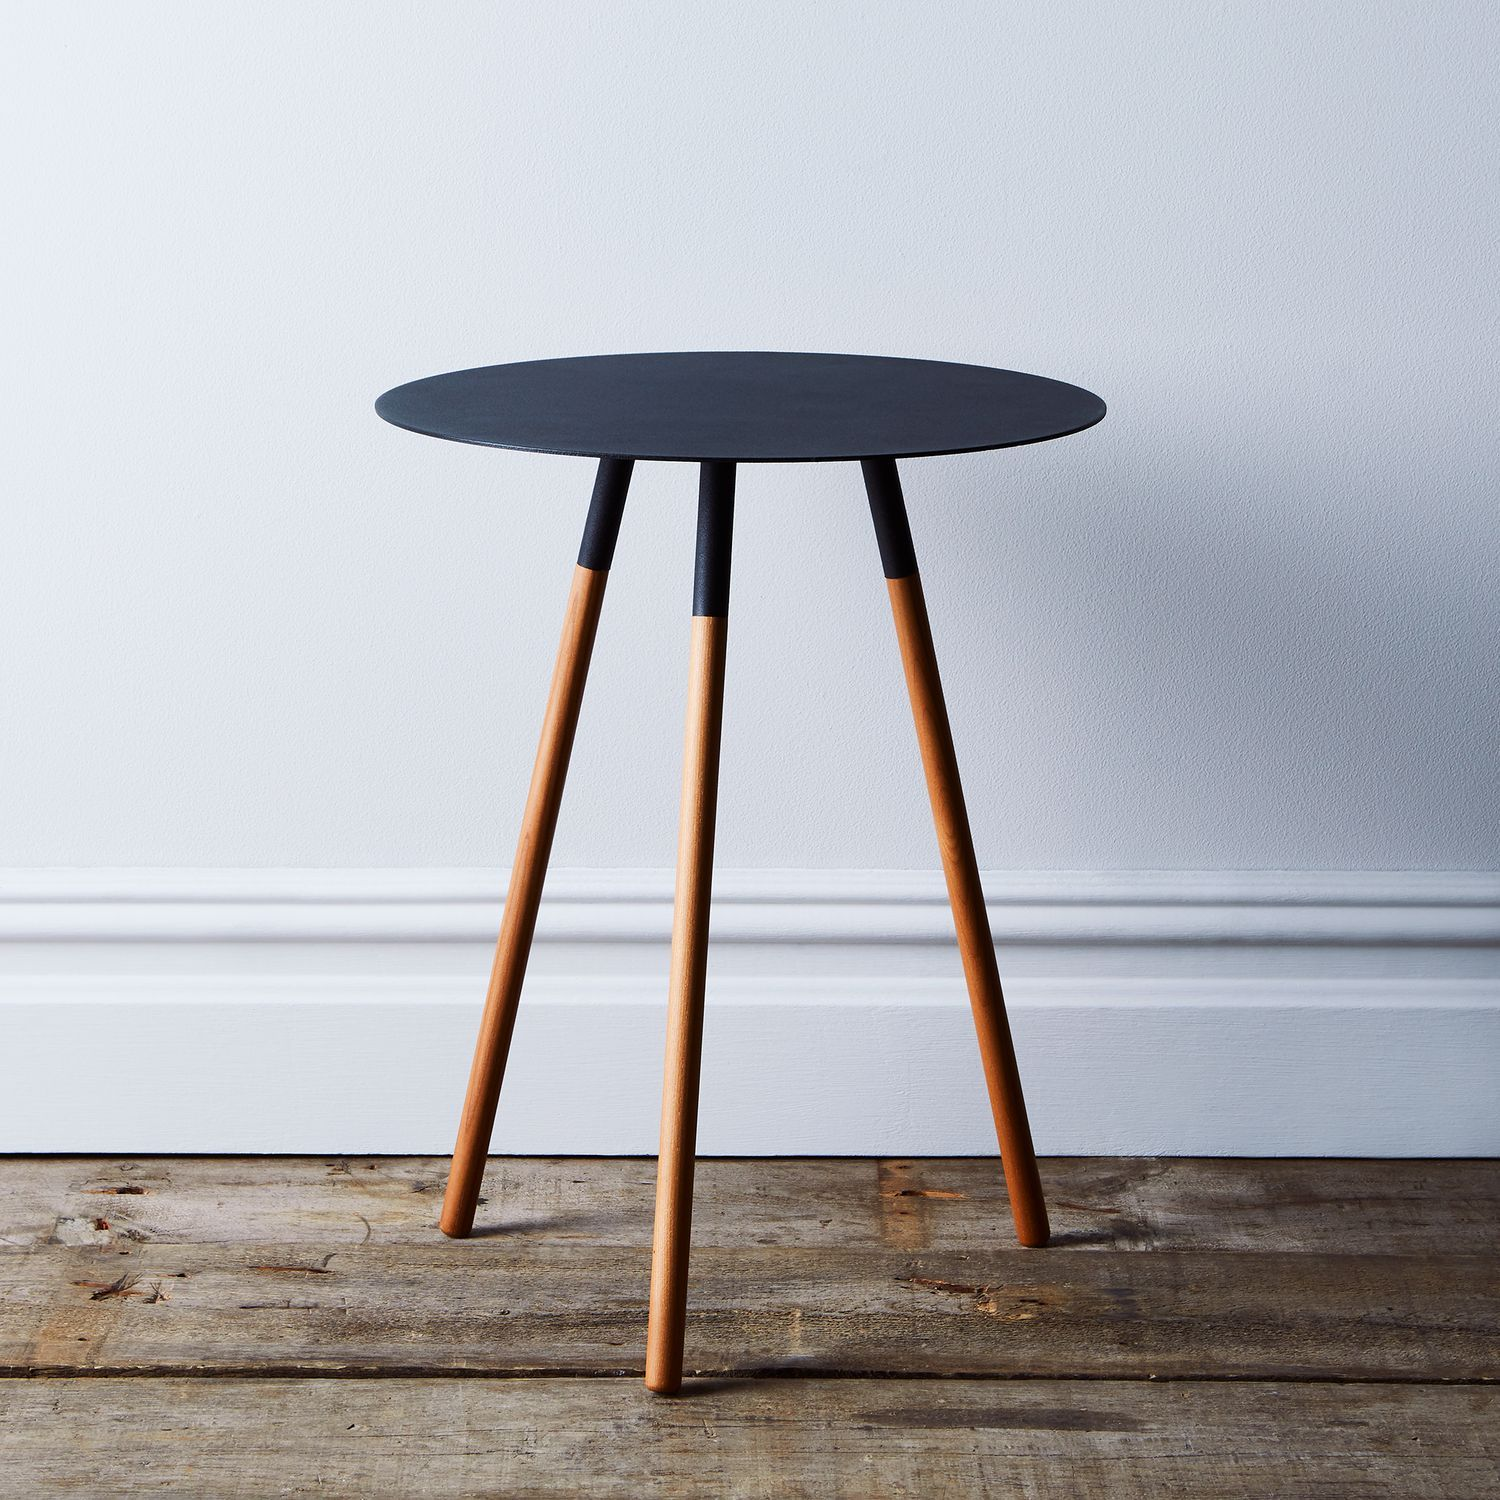 Steel Wood Round Side Table Round Furniture Round Wood Side Table Round Side Table [ 1500 x 1500 Pixel ]